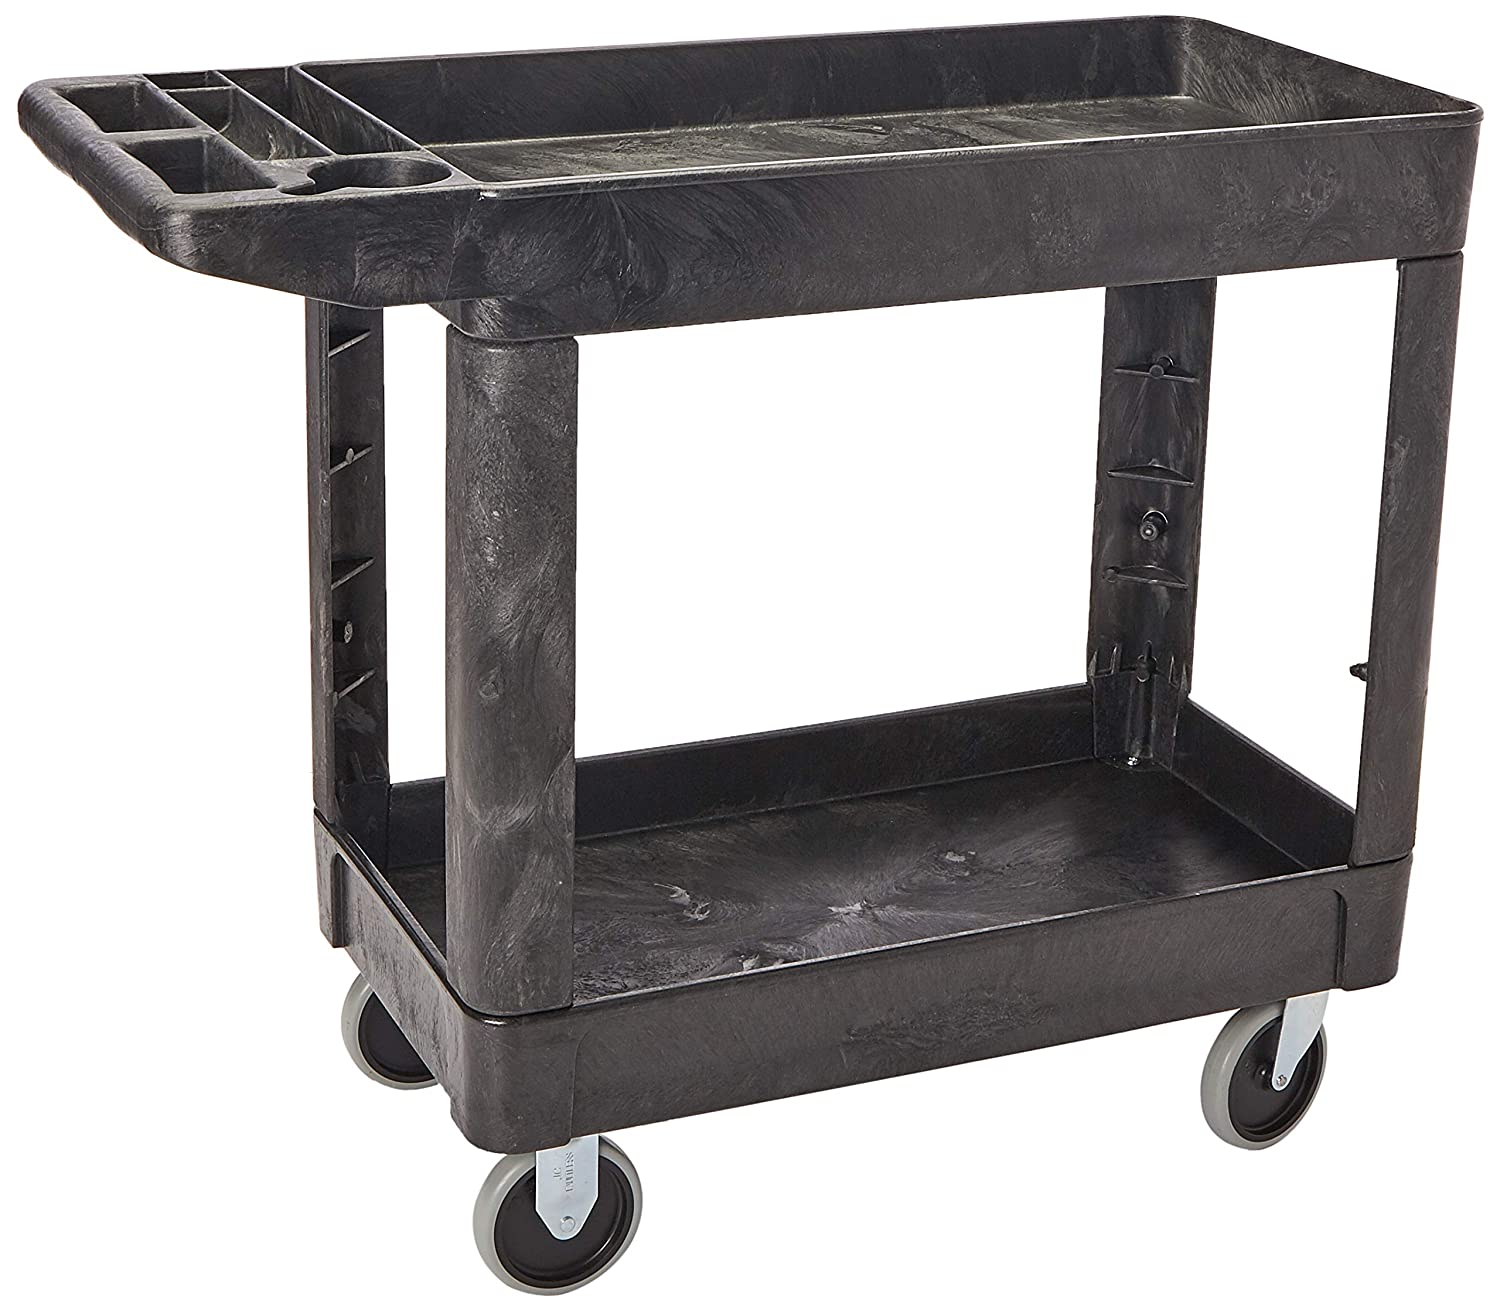 Rubbermaid Commercial Products 2-Shelf Utility/Service Cart, Small, Lipped Shelves, Storage Handle, 500 lbs. Capacity, for Warehouse/Garage/Cleaning/Manufacturing (FG450089BLA)